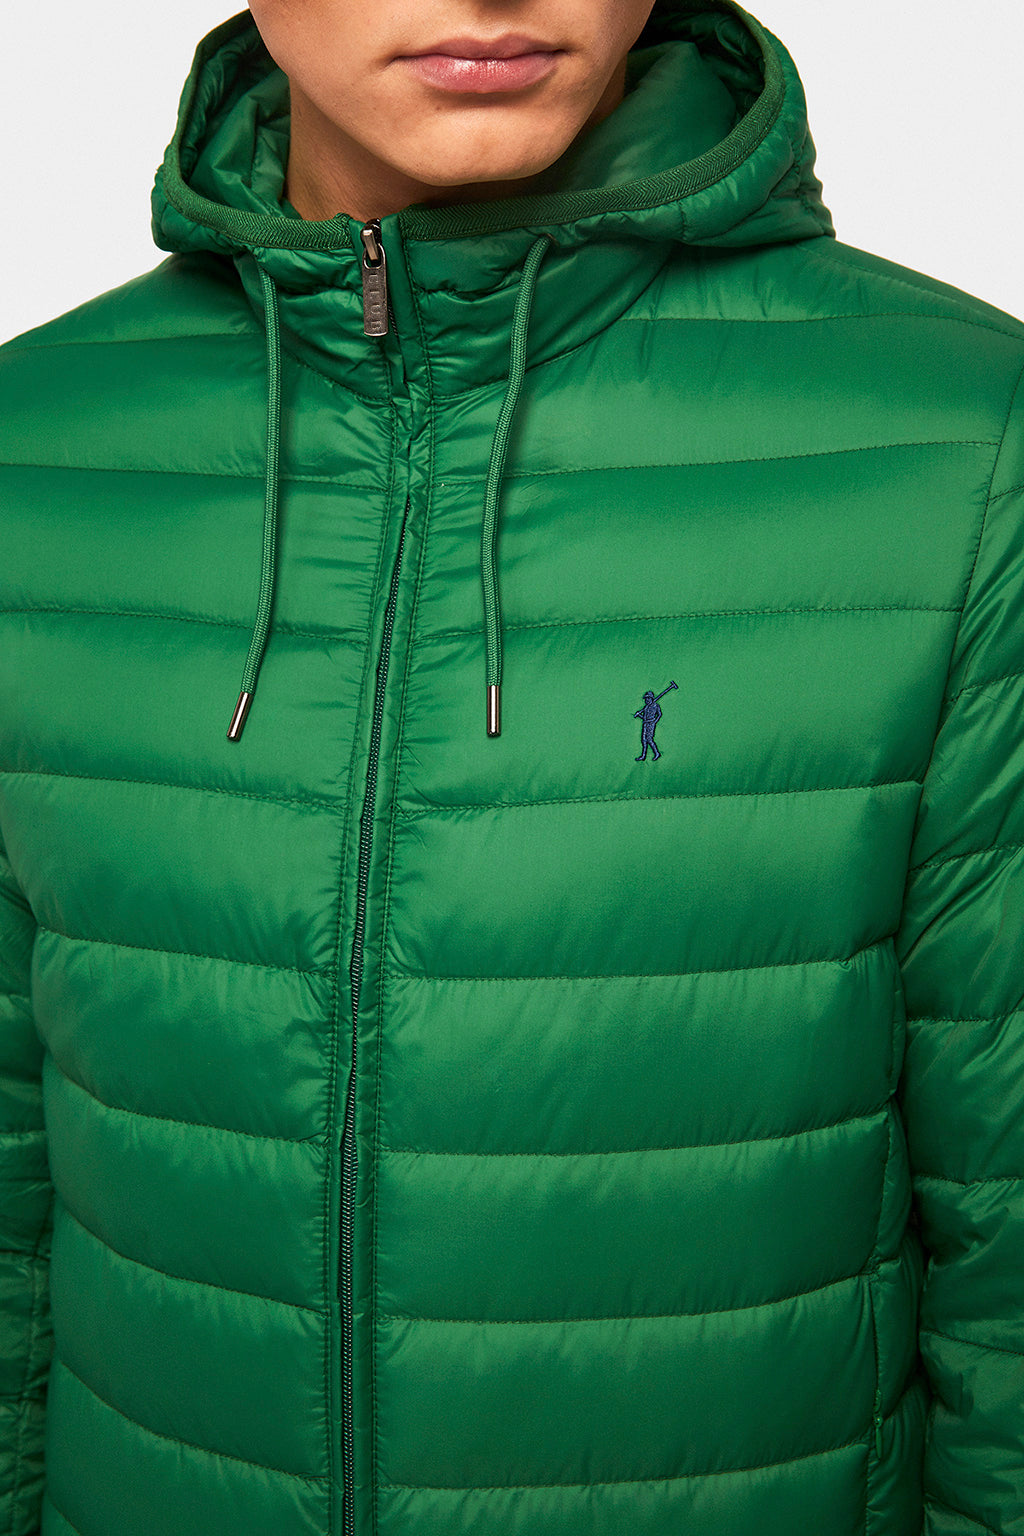 Green Ultralight hoodie jacket